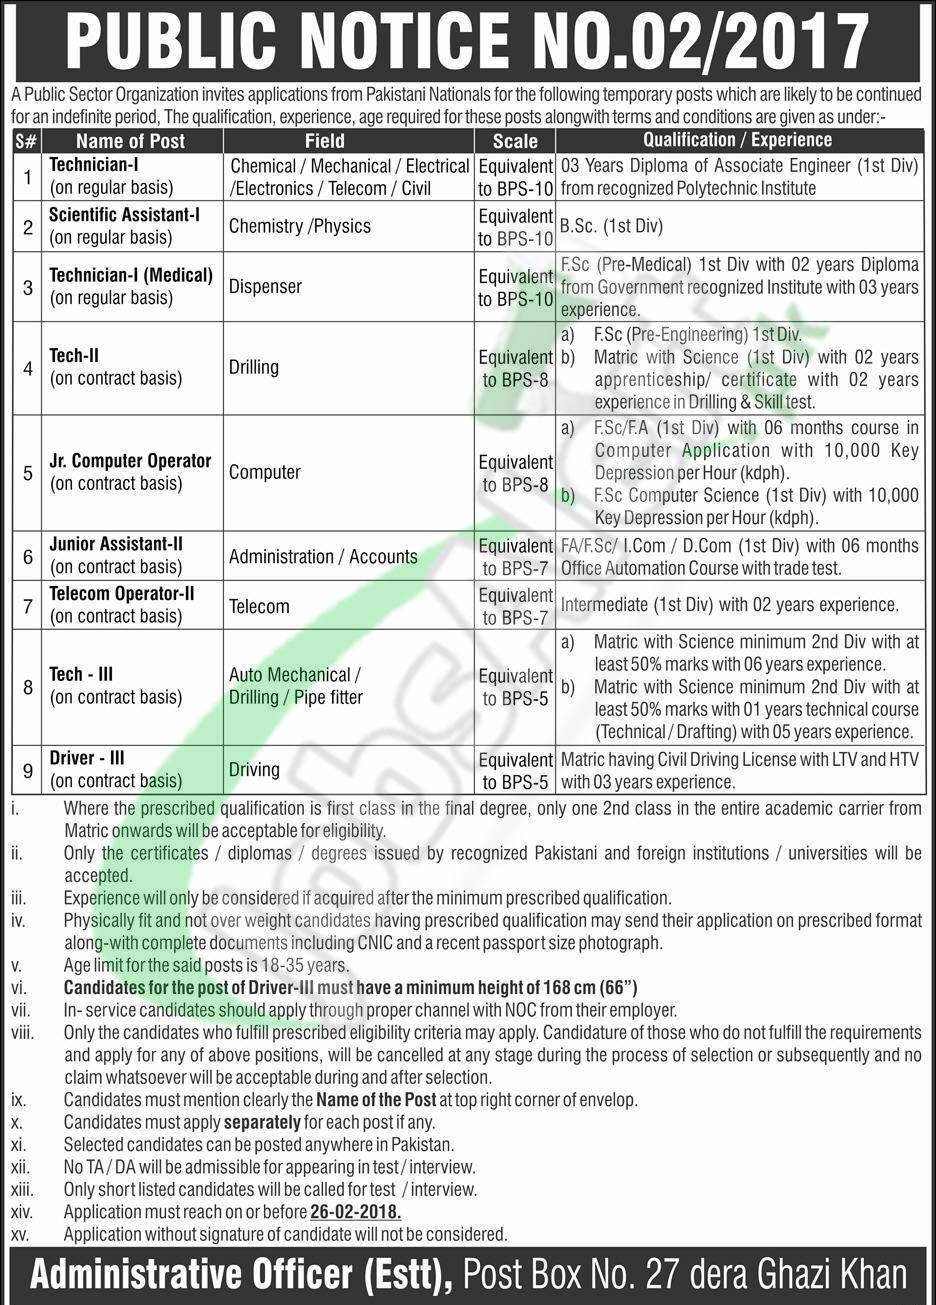 PO Box 27 DG Khan Jobs 2018 Application Form Download Online